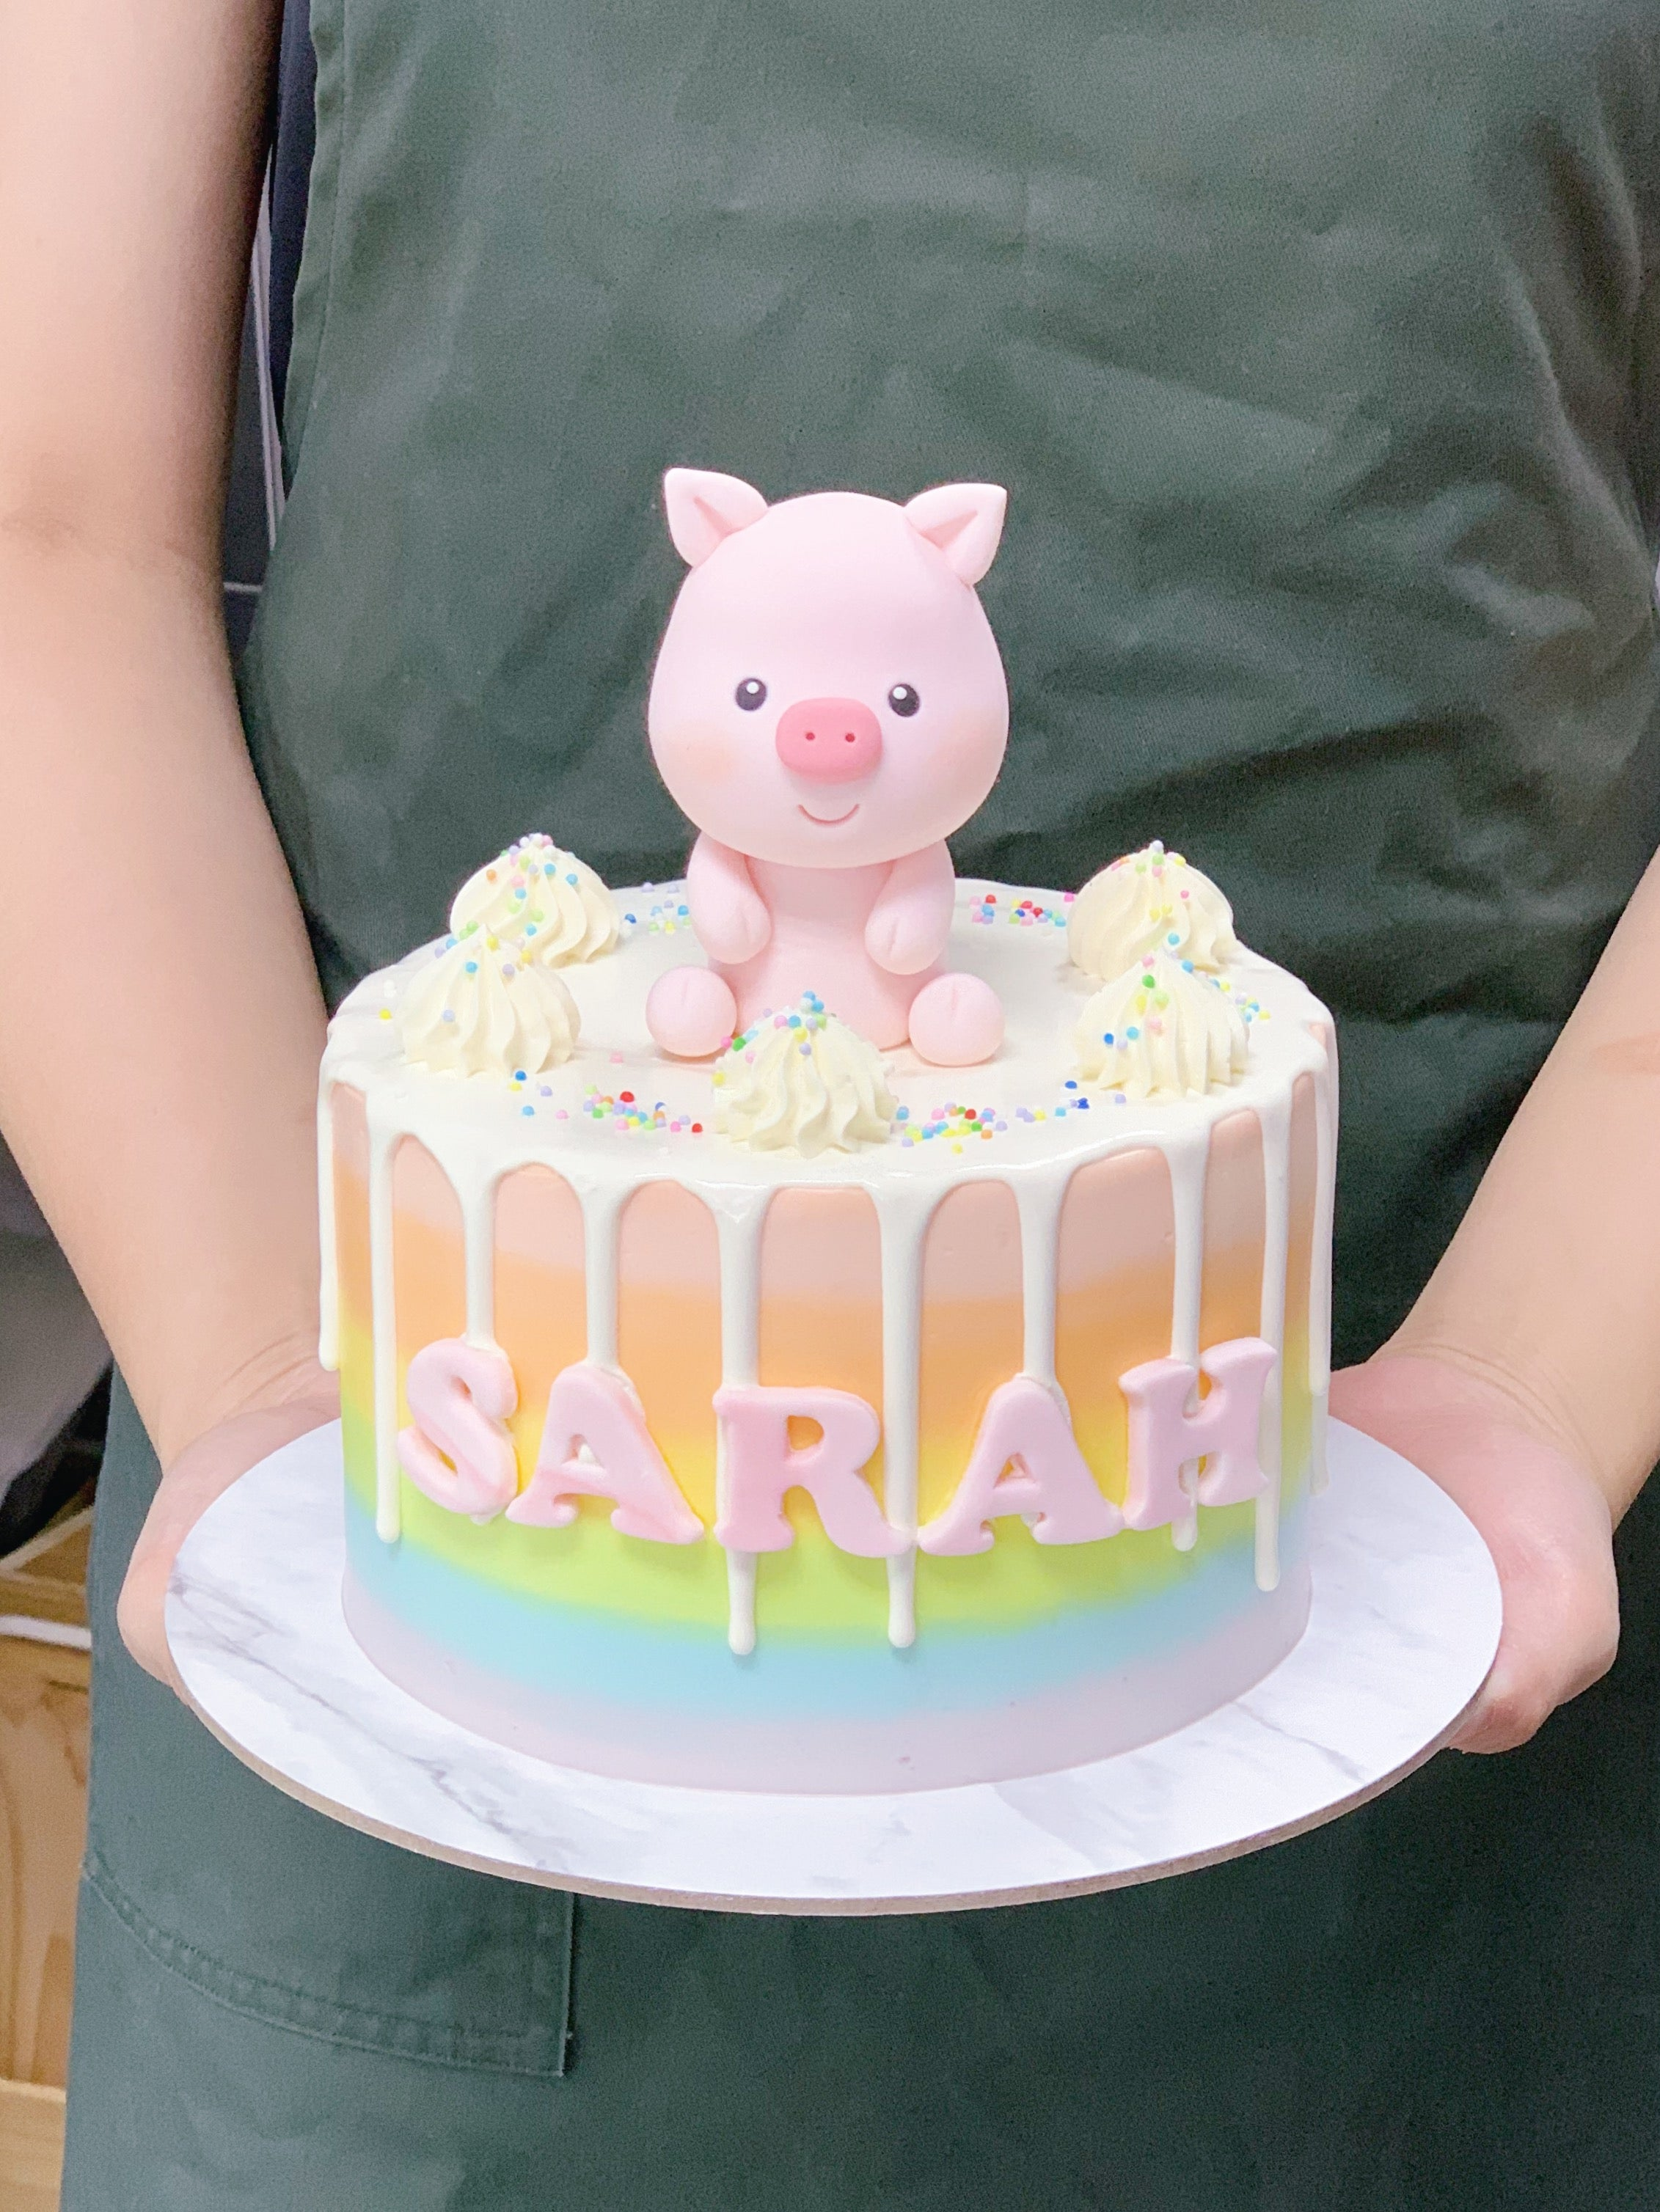 Pastel Rainbow Drip Cake with Pig Topper